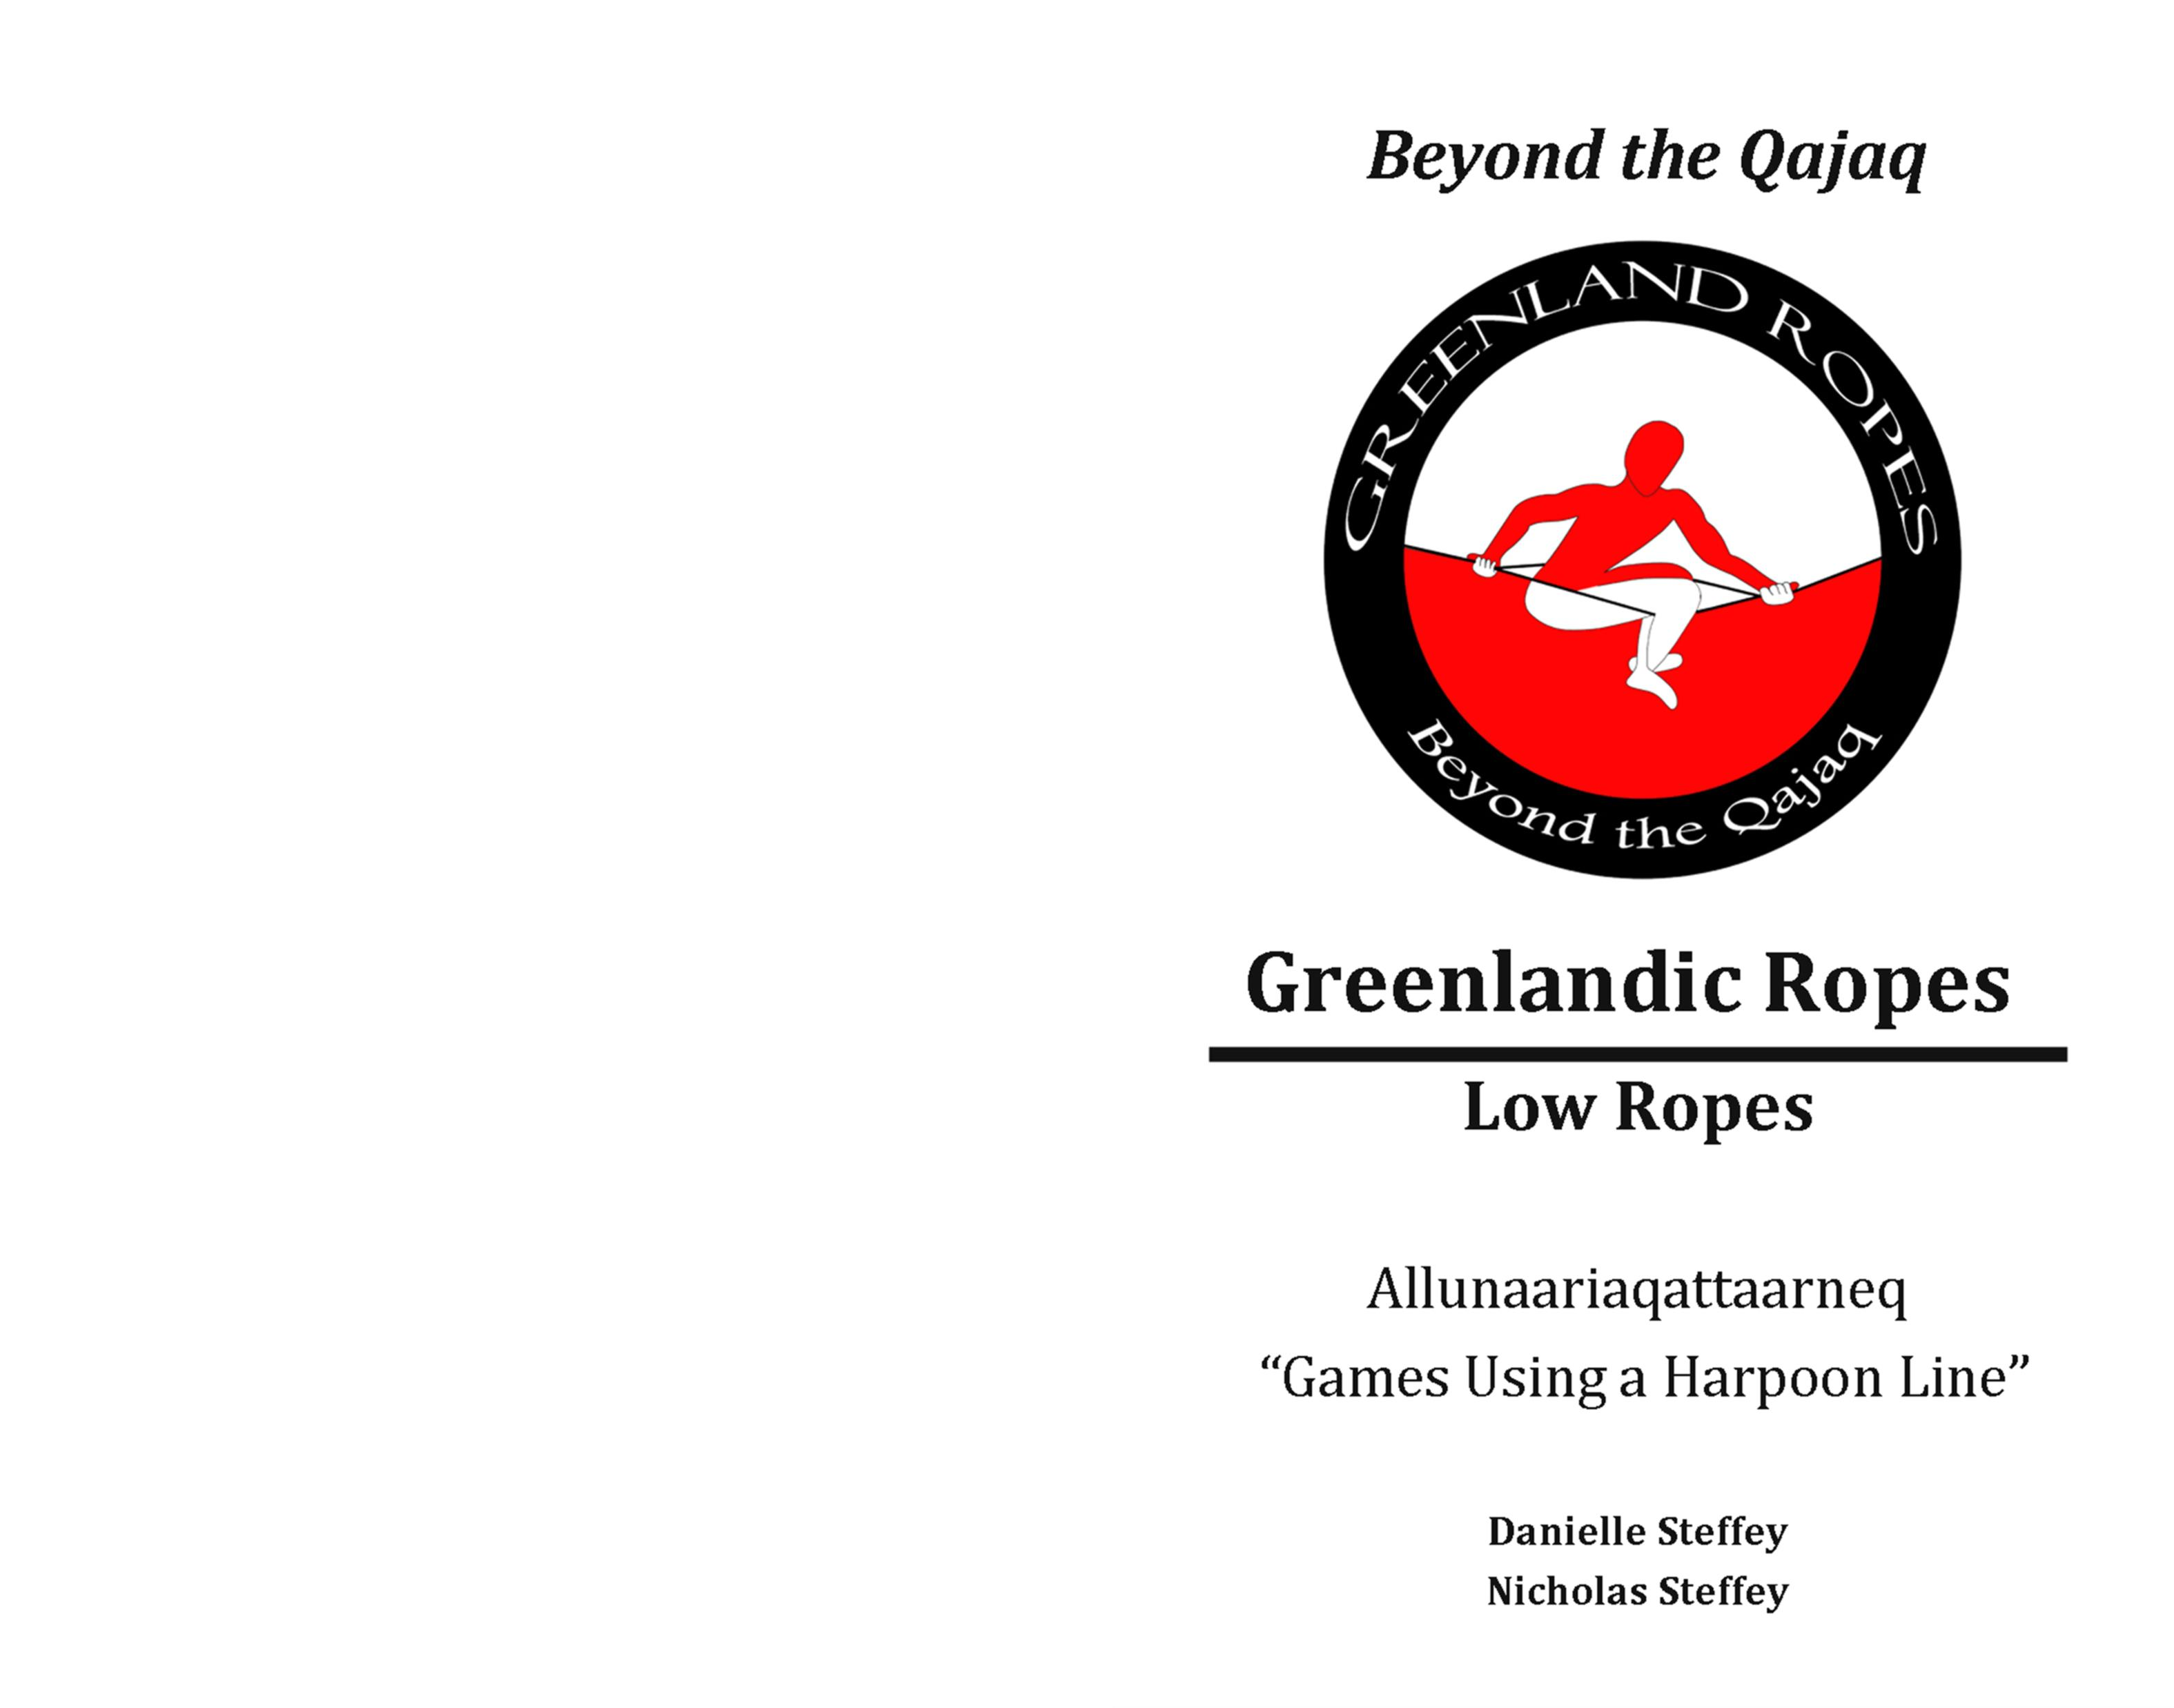 Greeland Ropes w/Instructions cover image